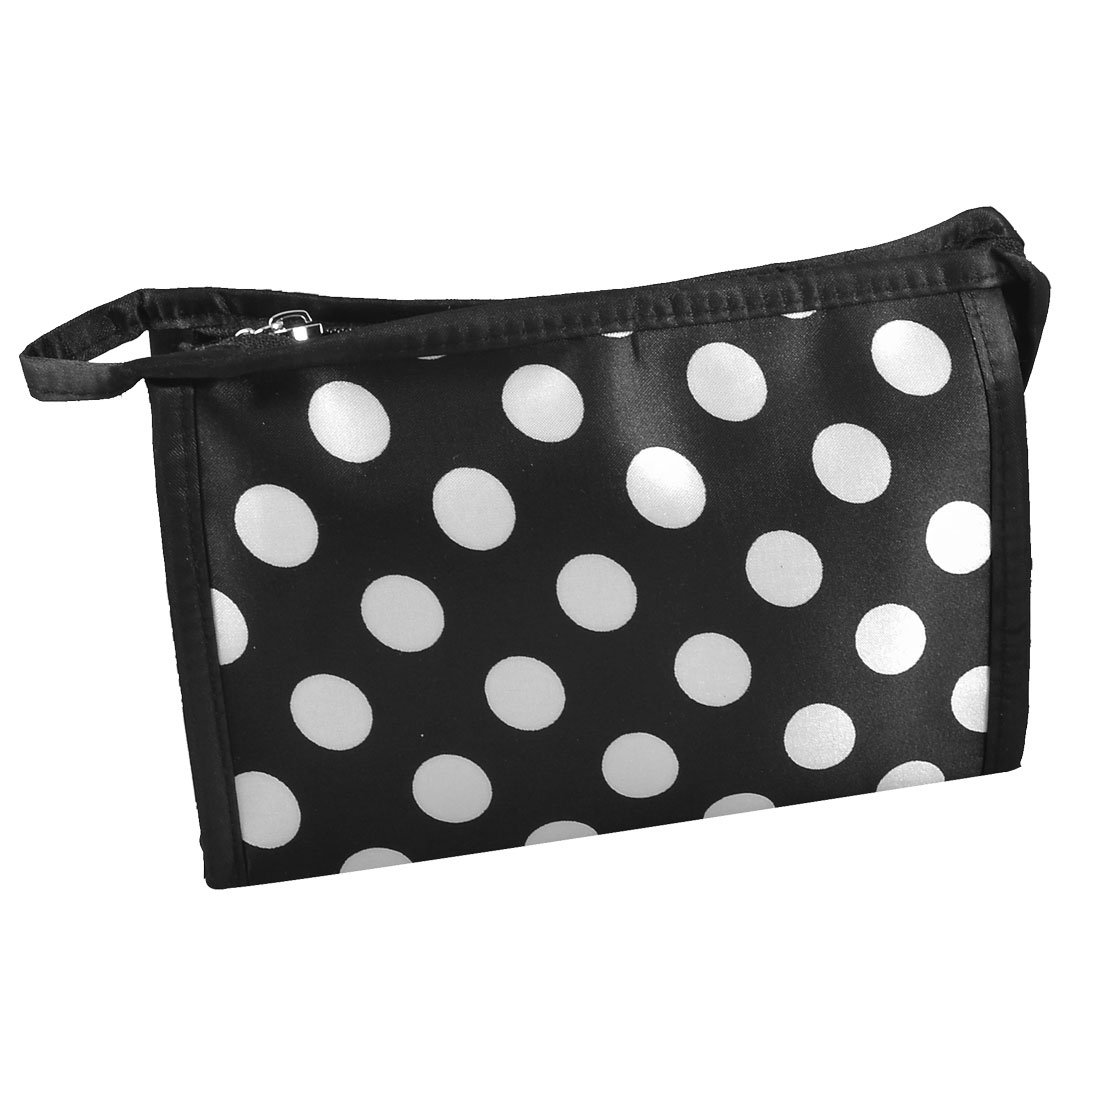 Rectangle Dotted Toiletry Case Cosmetic Bag Pouch White Black w Mirror